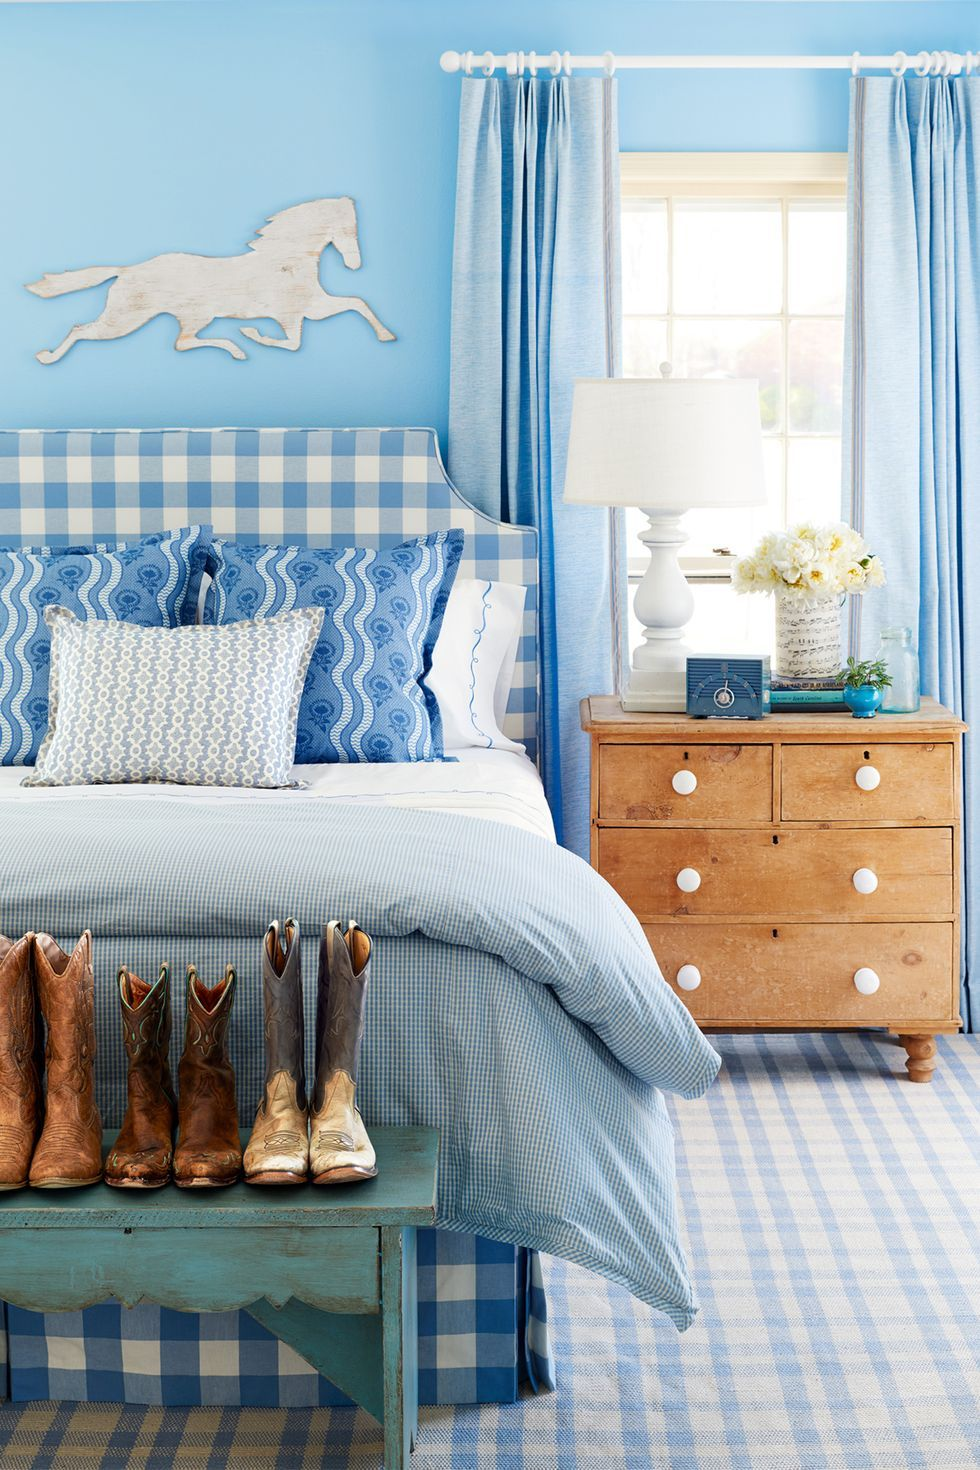 25 Reasons Why Blue Is The Best Color For Your Home Blue Themed Bedroom Blue Rooms Blue Room Decor